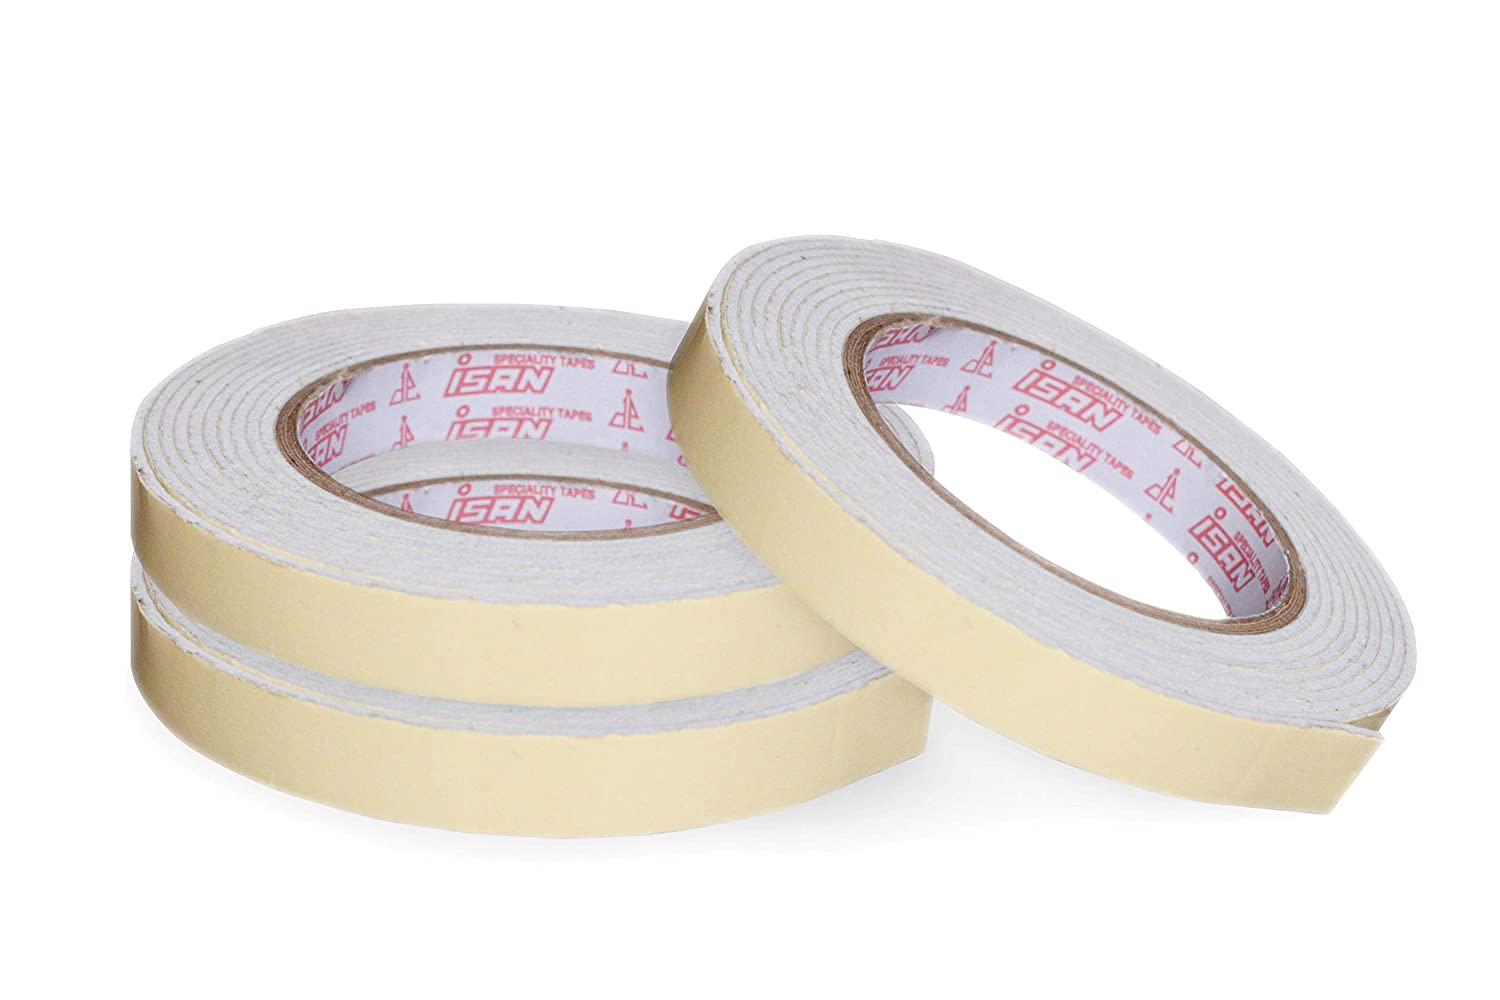 Double Sided Foam Tapes for Your Commercial and Industrial Purposes